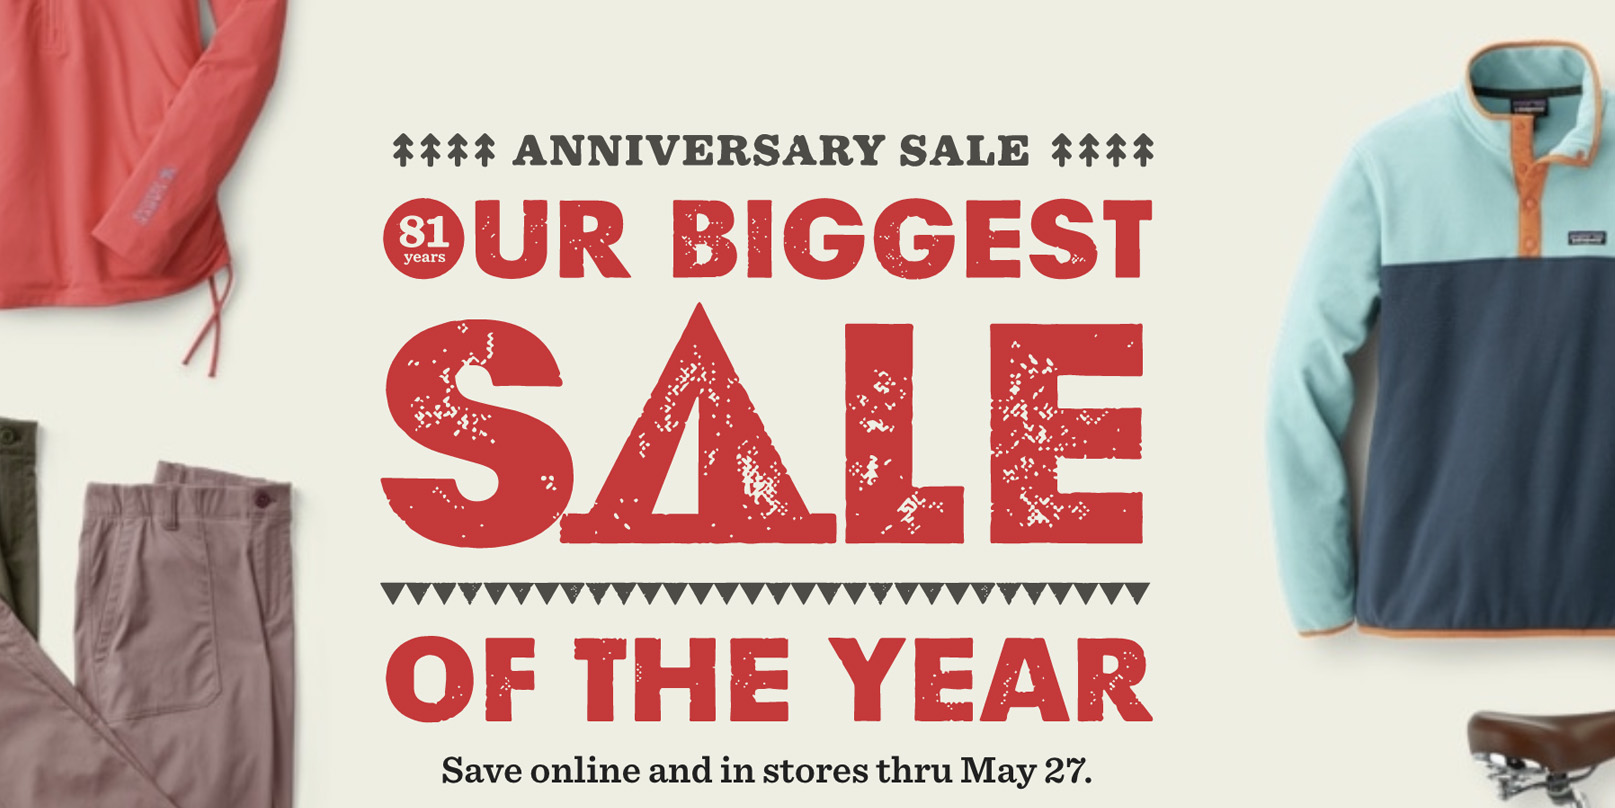 REI Anniversary Sale takes 50% off Patagonia, Marmot, The North Face & more from $19